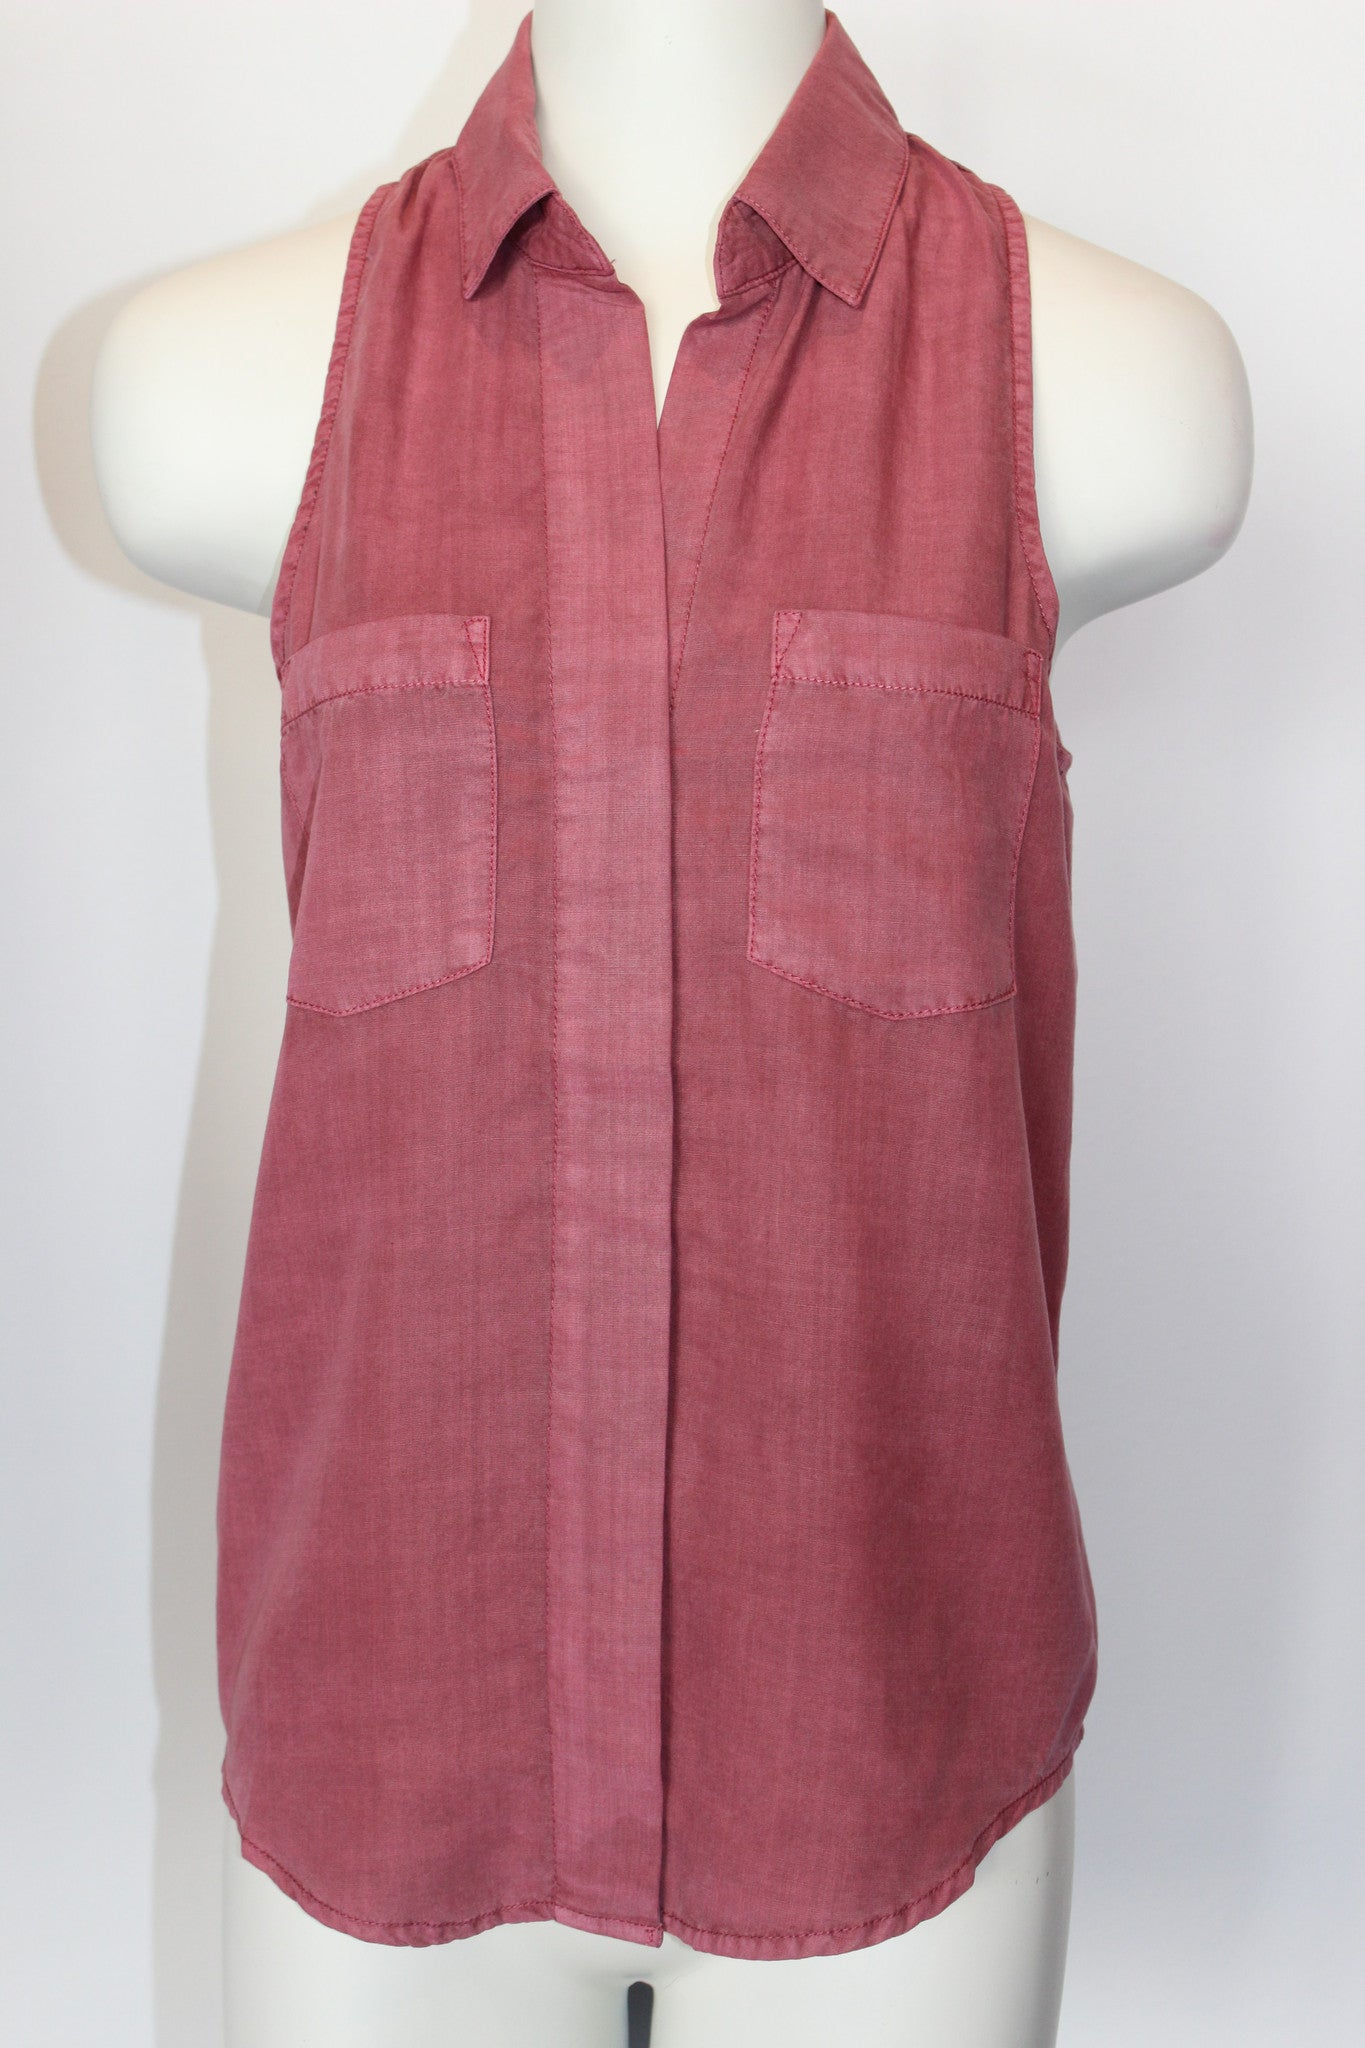 Raspberry Sleeveless Button Down